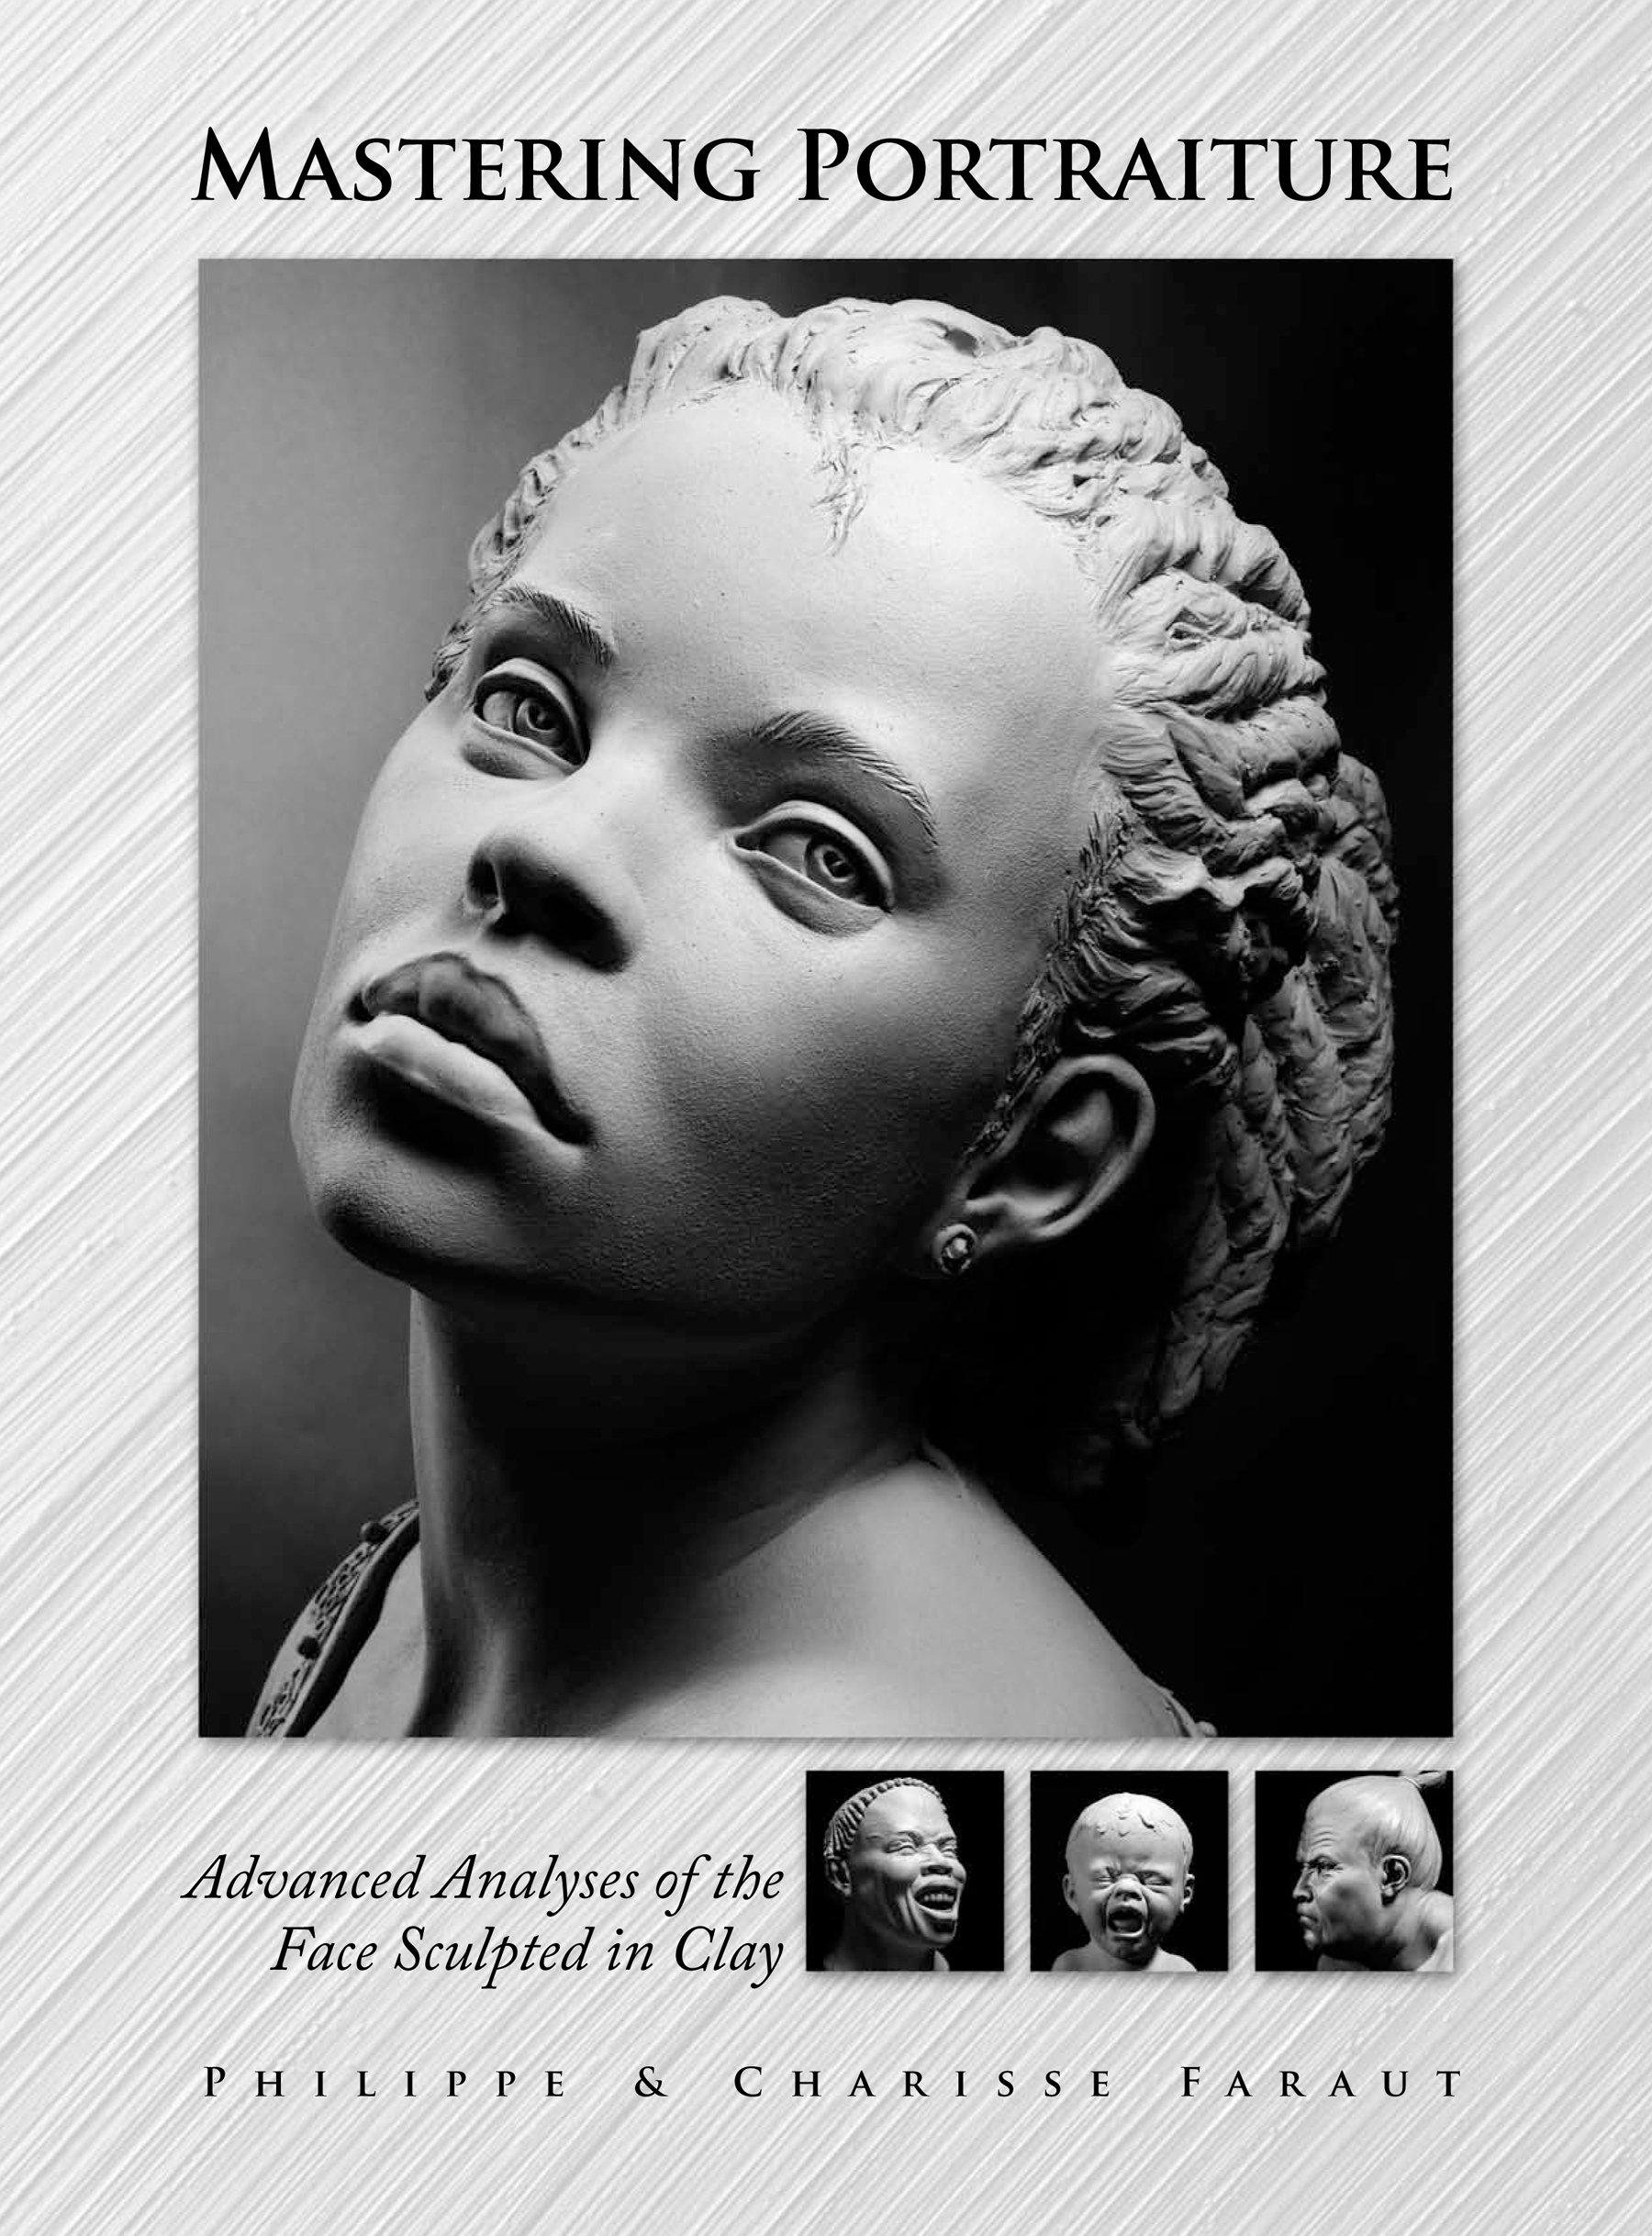 Mastering Portraiture Advanced Analyses of the Face Sculpted in Clay:  Philippe Faraut, Charisse Faraut: 9780975506561: Amazon.com: Books